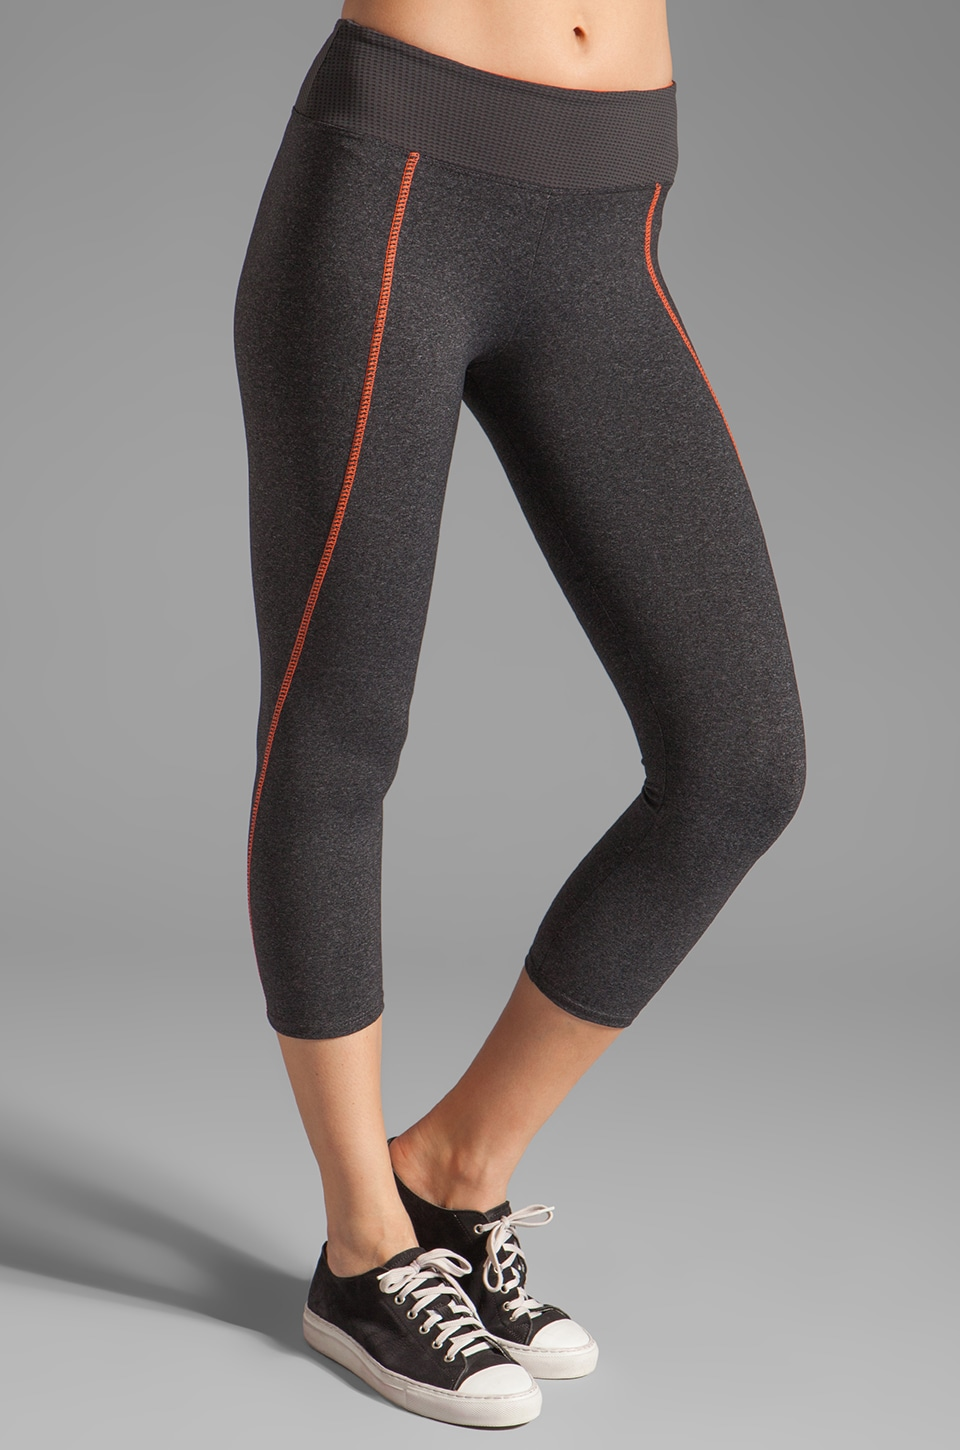 SOLOW High Impact Contrast Crop Legging in Heather Charcoal/Sunrise